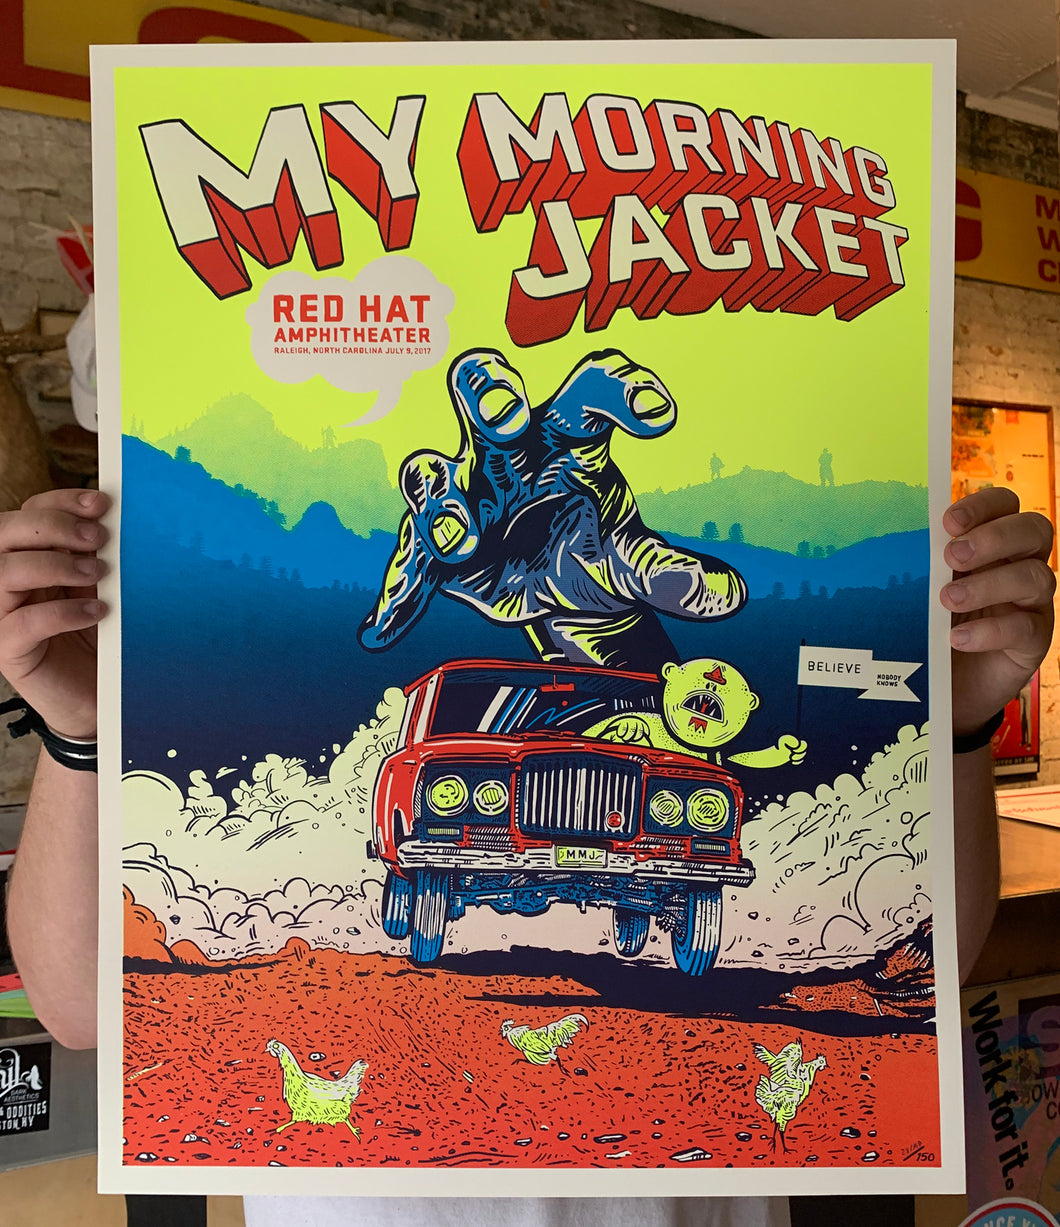 My Morning Jacket Live @ Red Hat Amphitheater Print